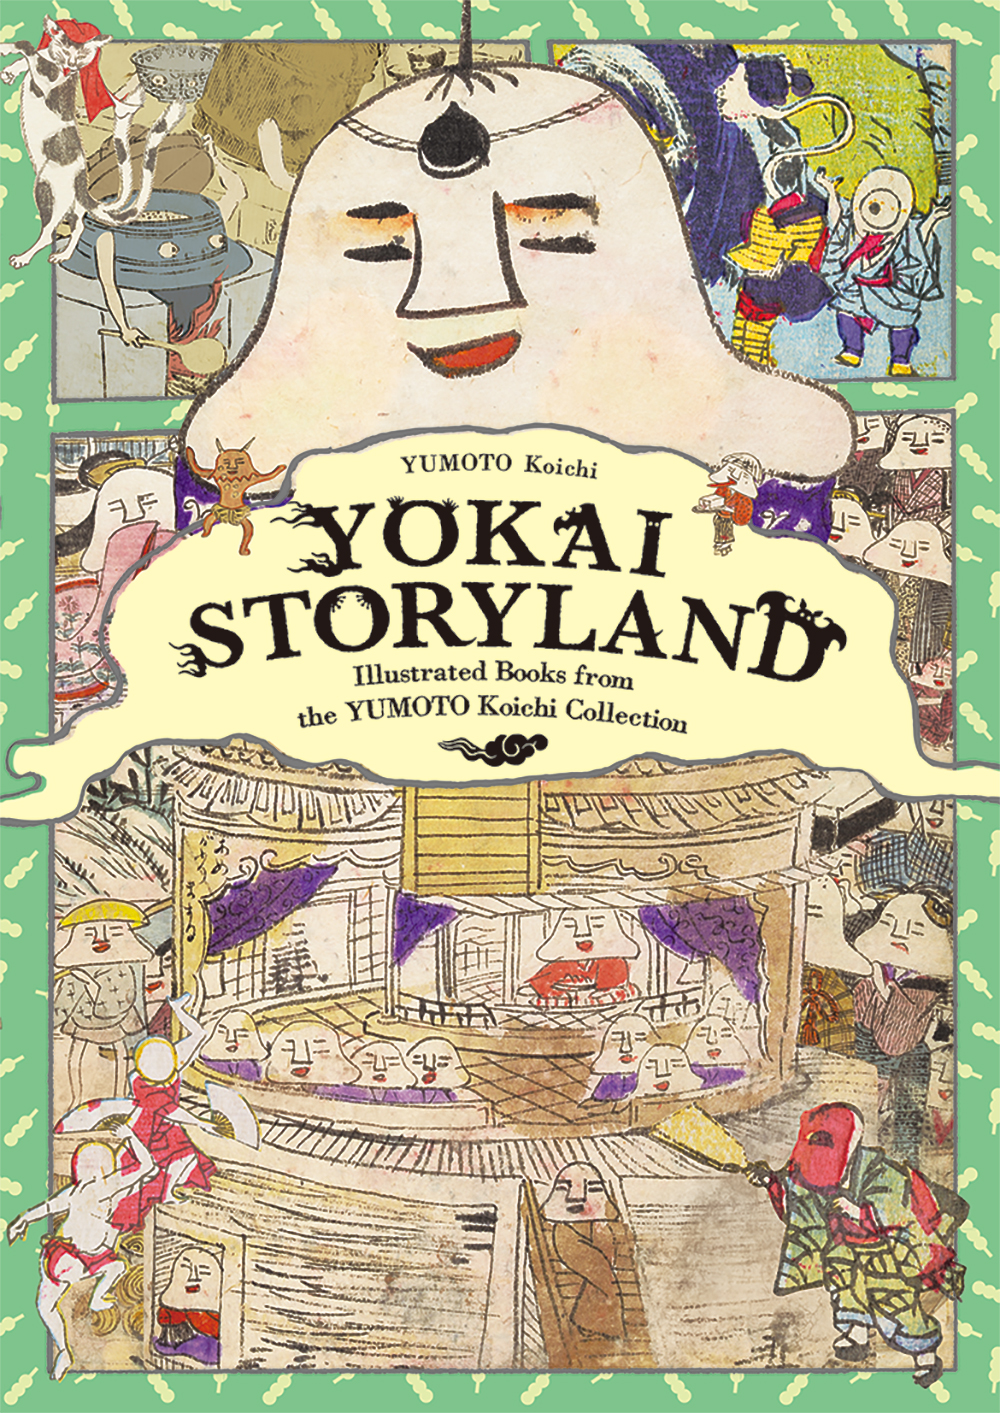 Yokai Storyland: Illustrated Books from the YUMOTO Koichi Collection